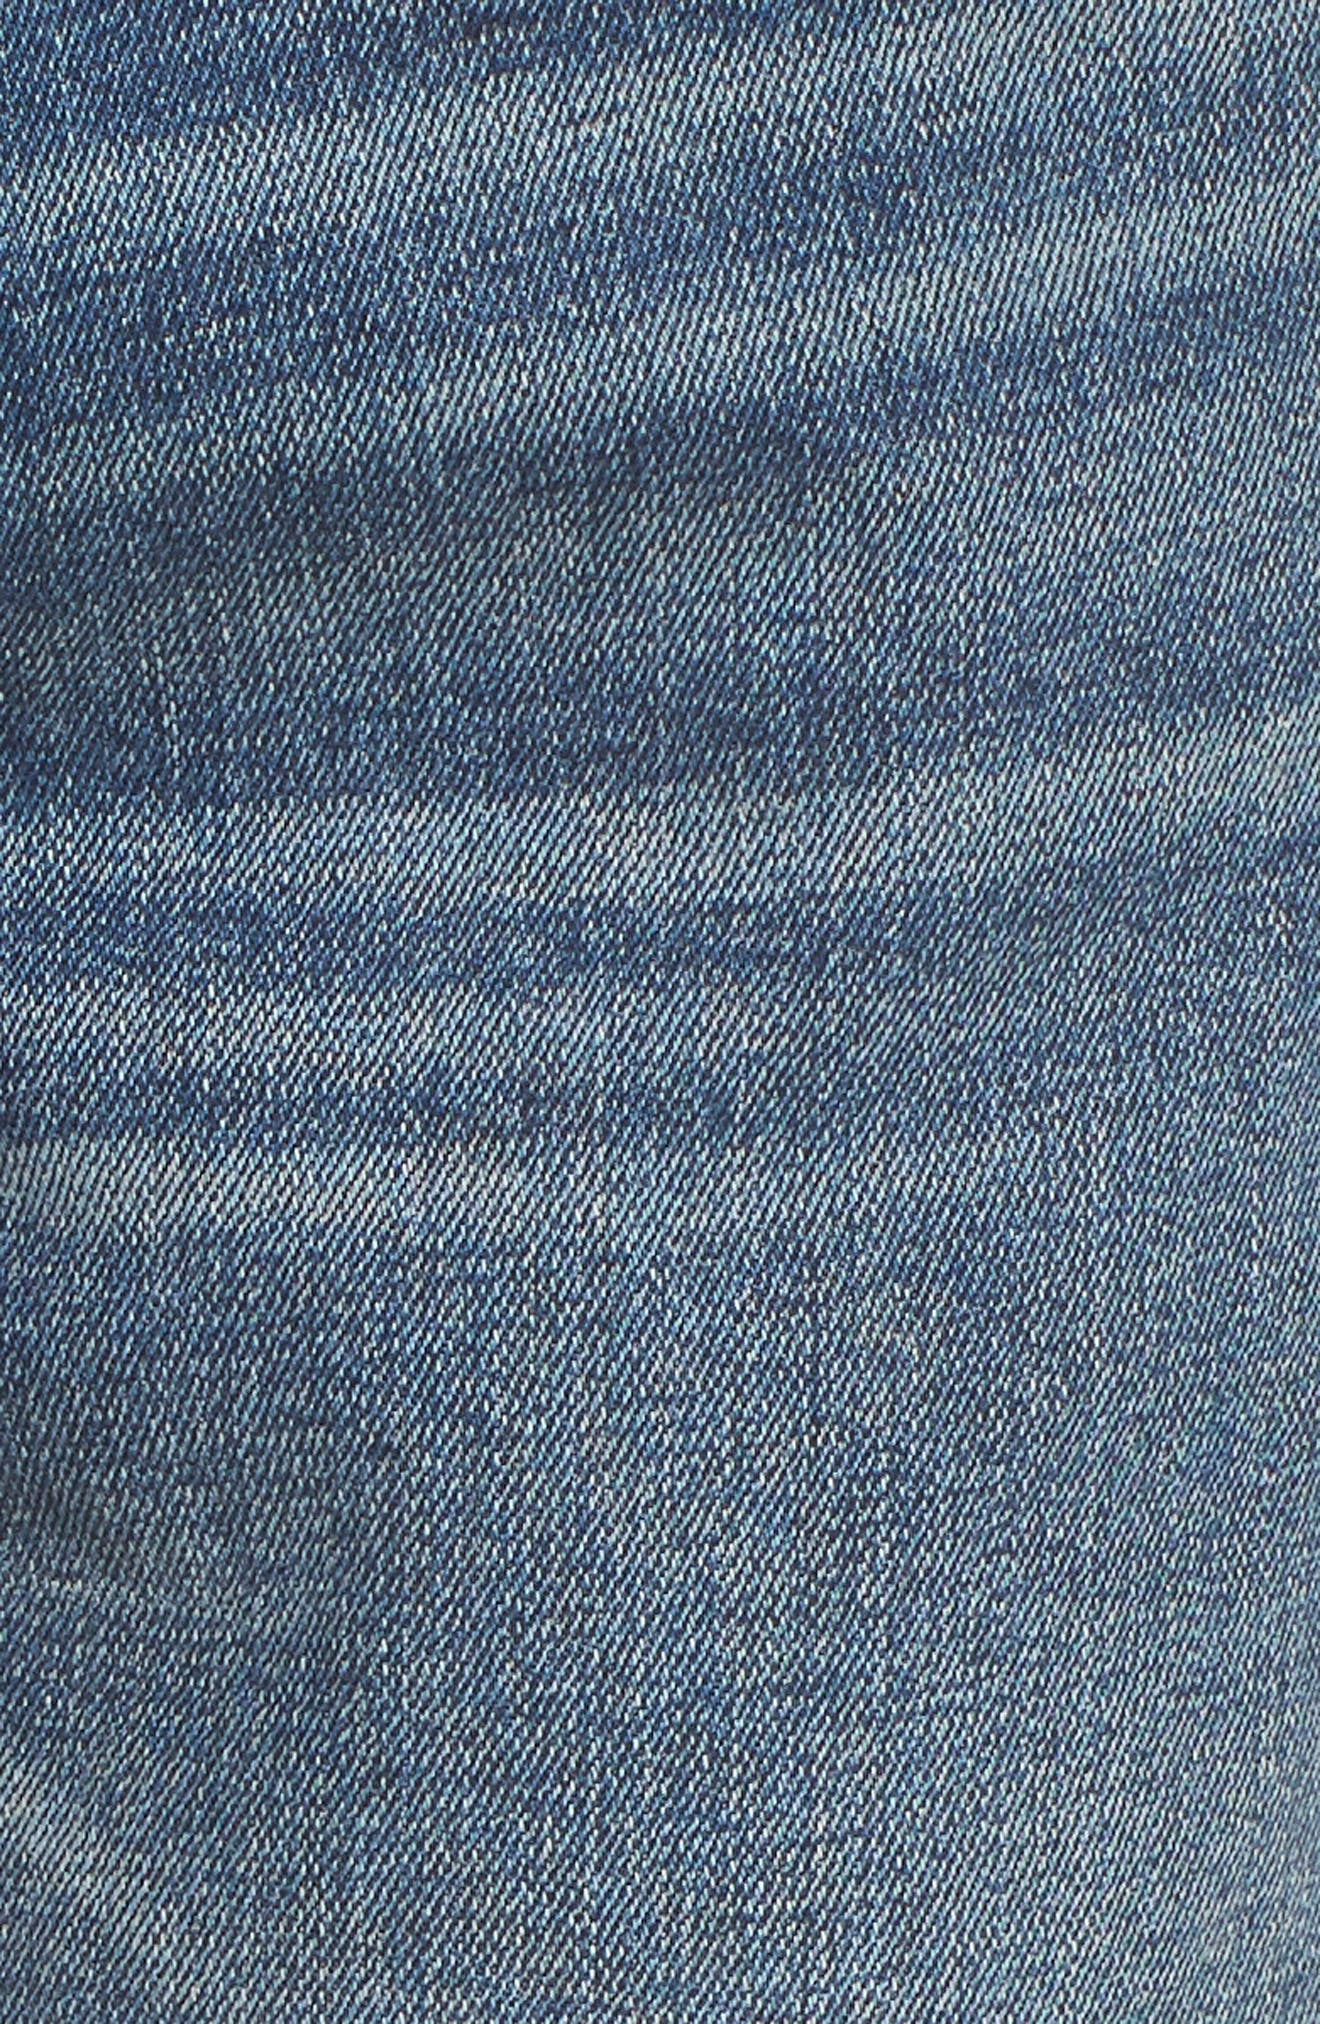 Friday Distressed Tapered Boyfriend Jeans,                             Alternate thumbnail 6, color,                             426